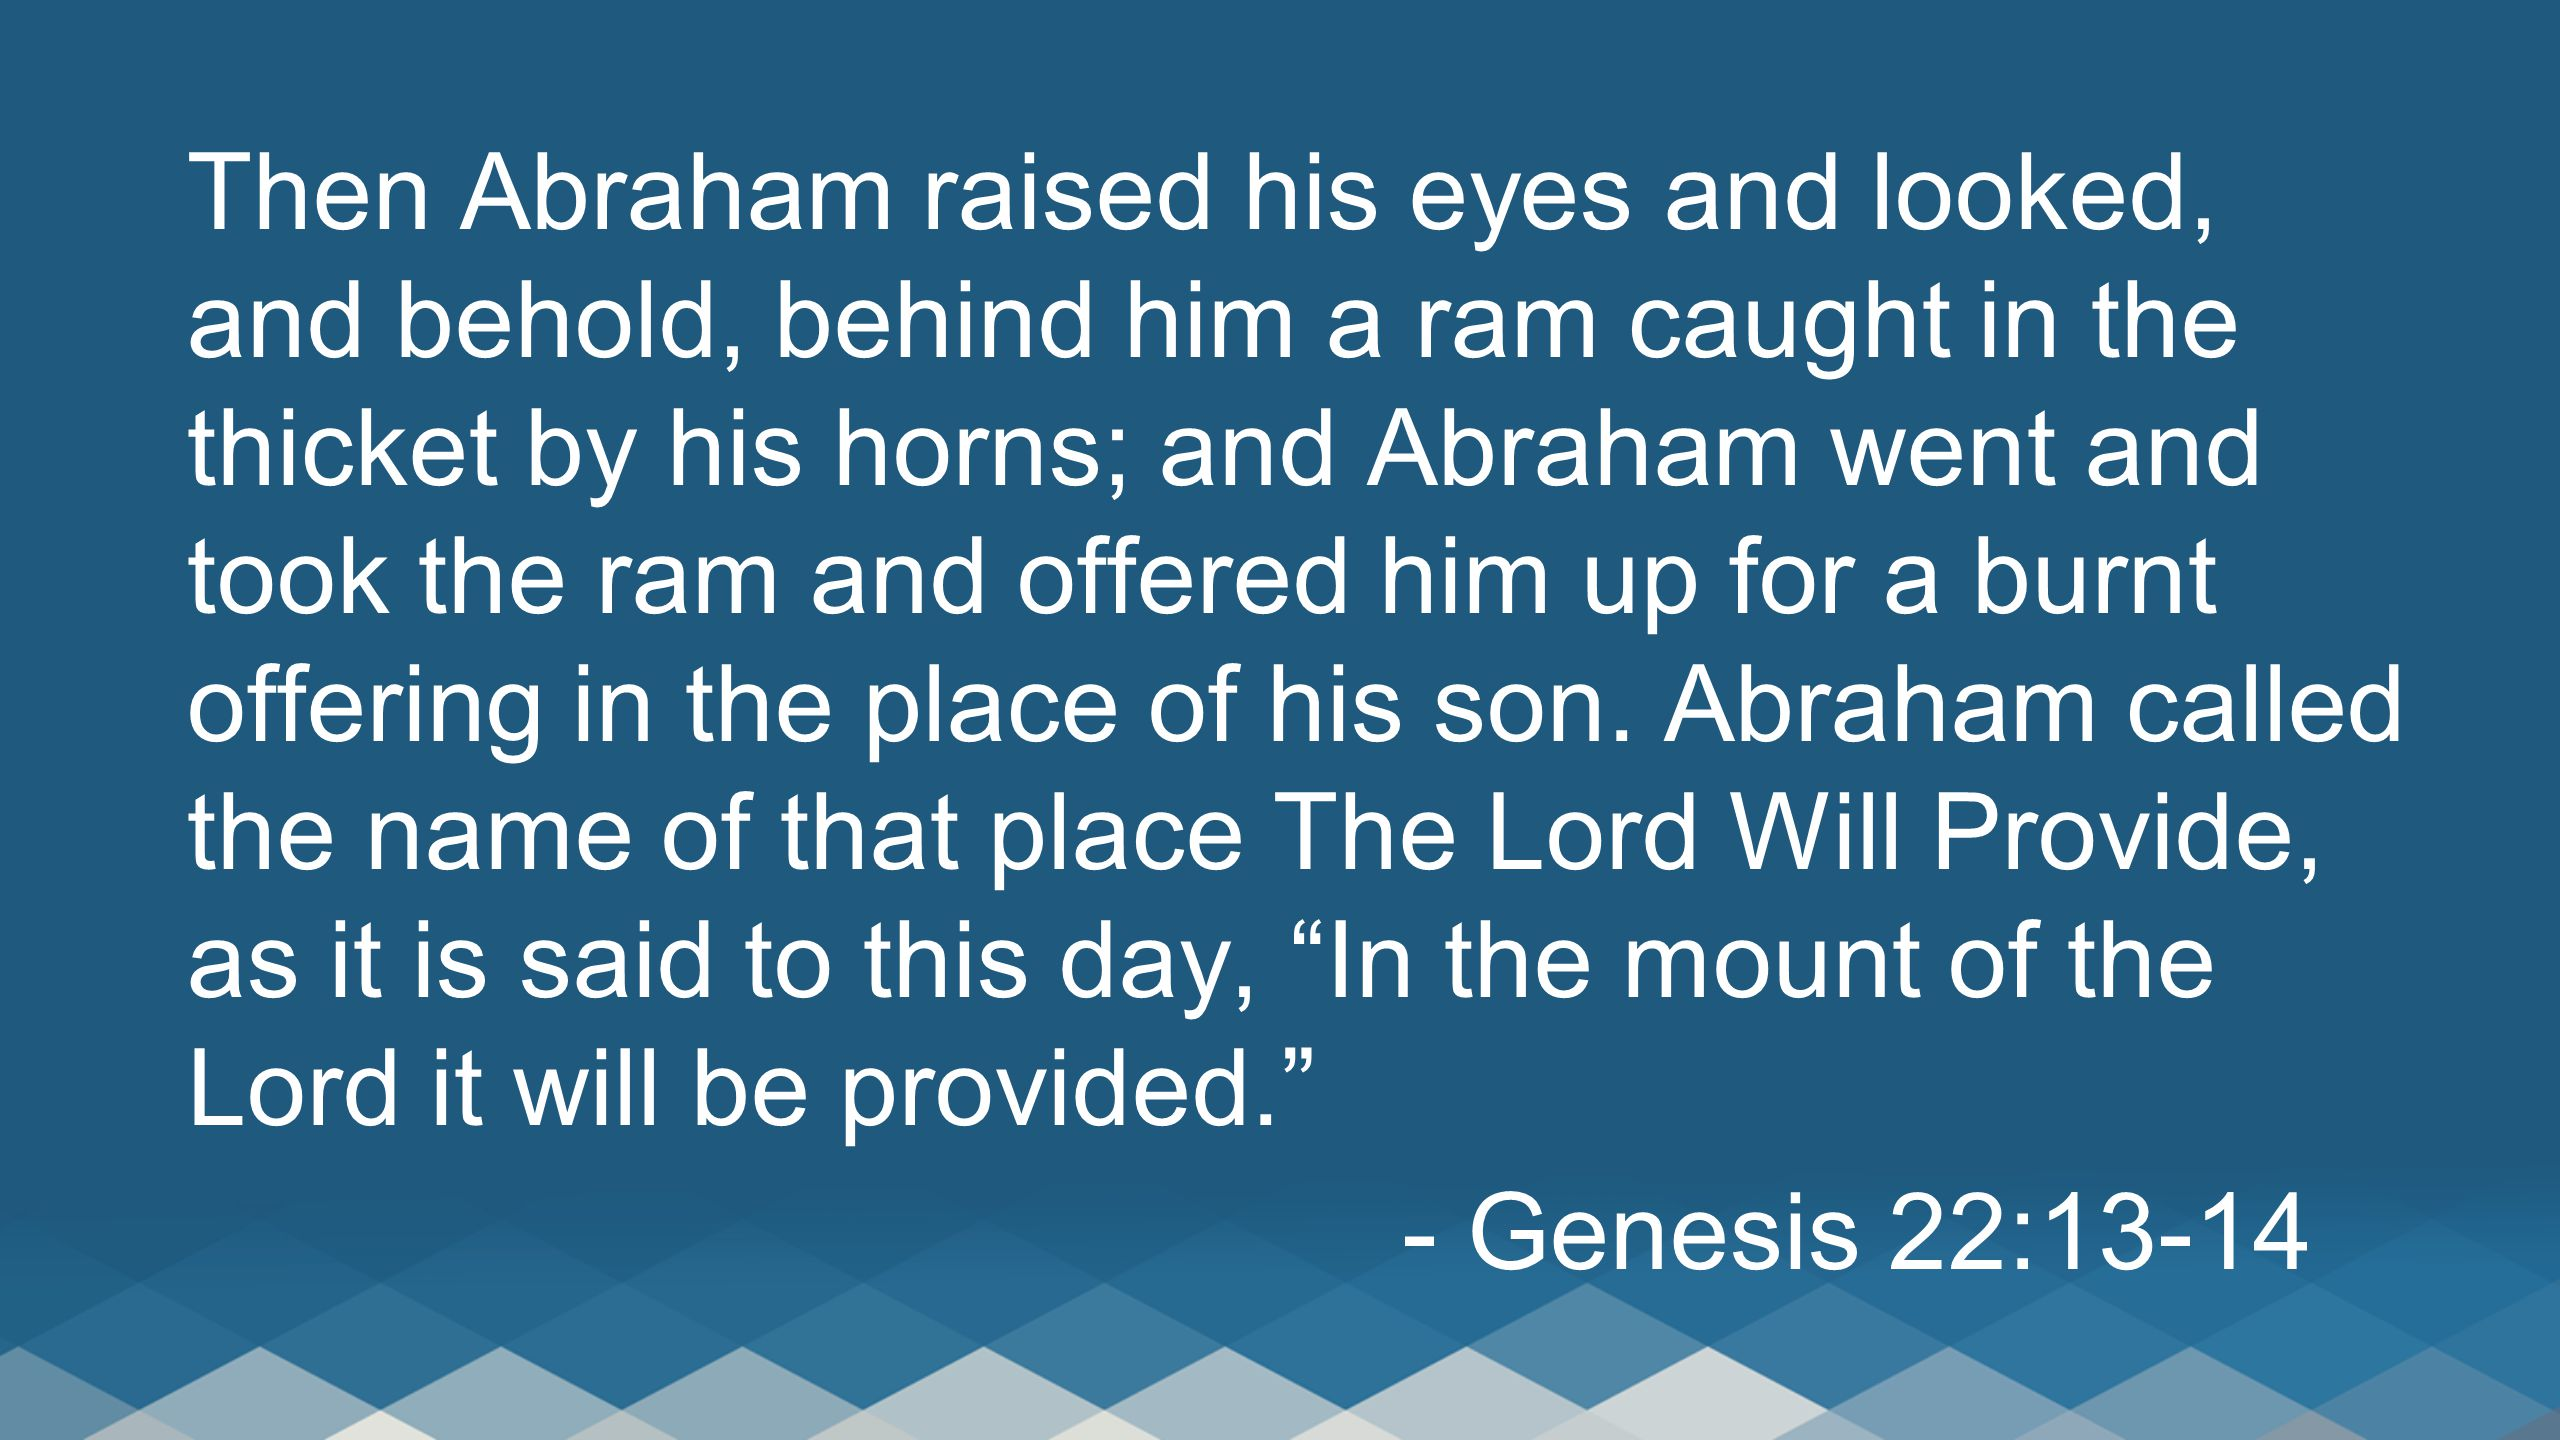 Then Abraham raised his eyes and looked, and behold, behind him a ram caught in the thicket by his horns; and Abraham went and took the ram and offered him up for a burnt offering in the place of his son.